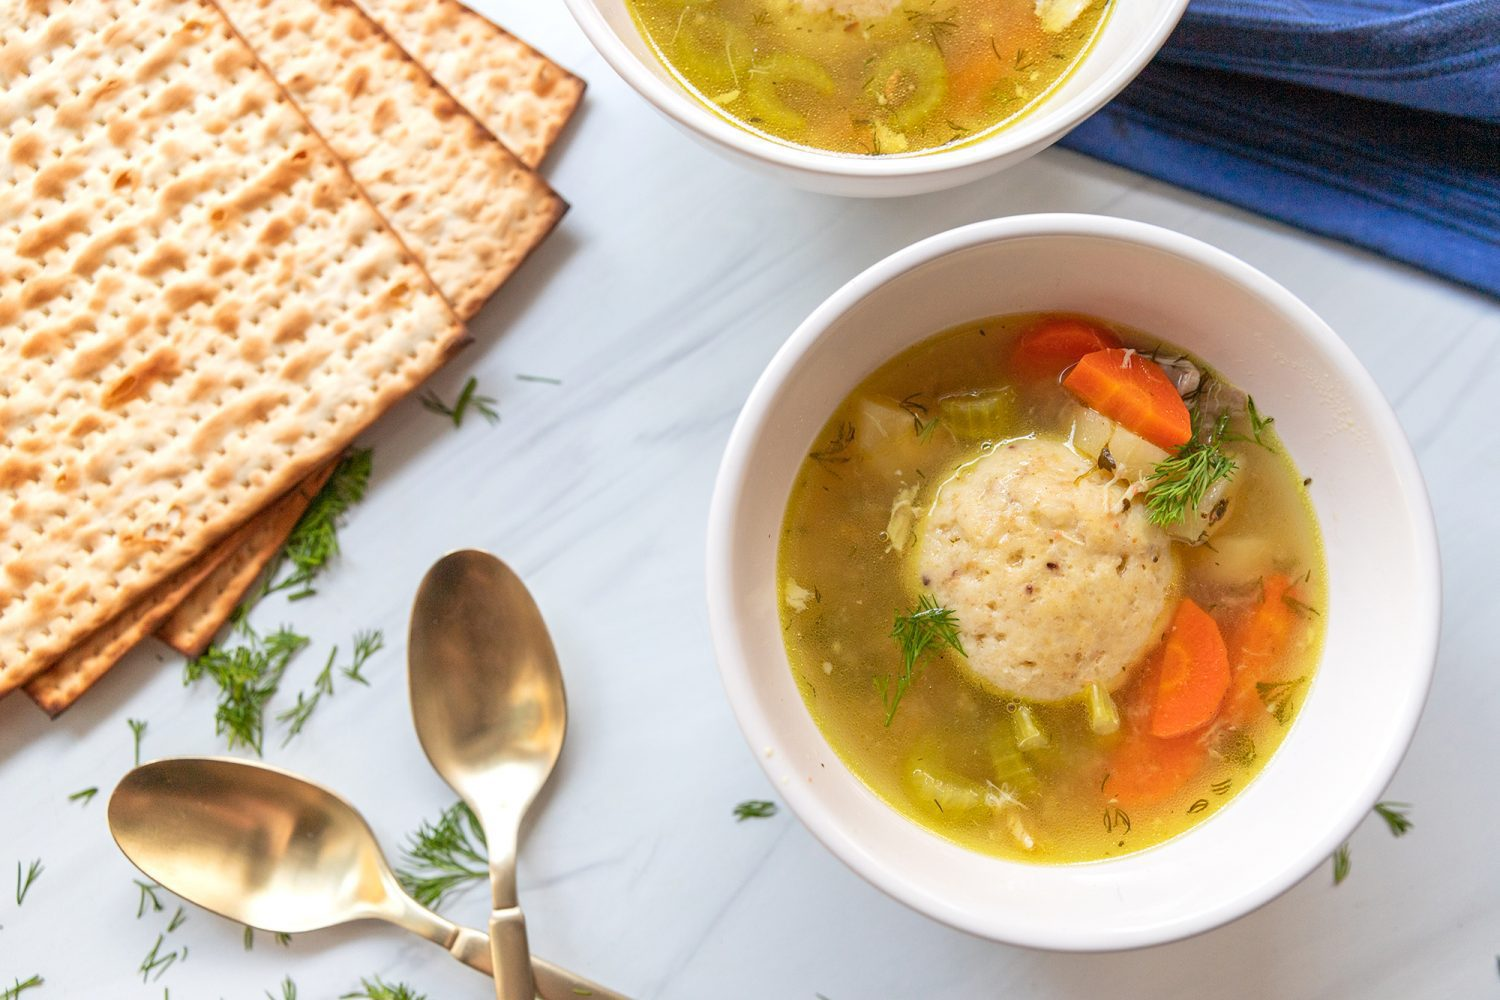 bowl of matzo ball soup with matzah and spoons